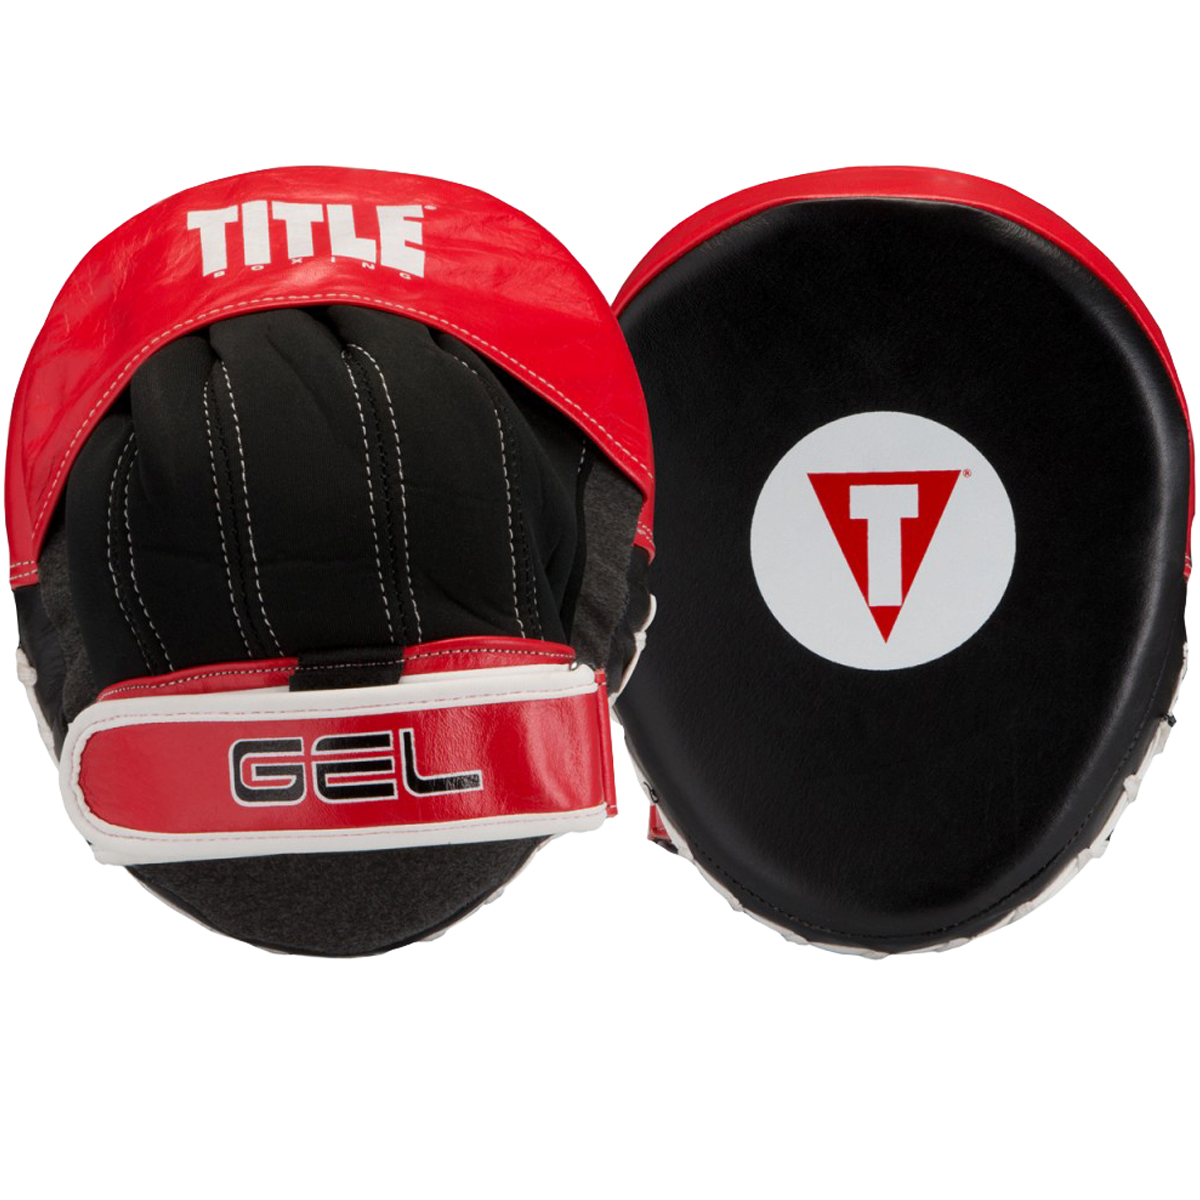 Title Boxing Gel Vortex Micro Contoured Punch Mitts - Black/Red